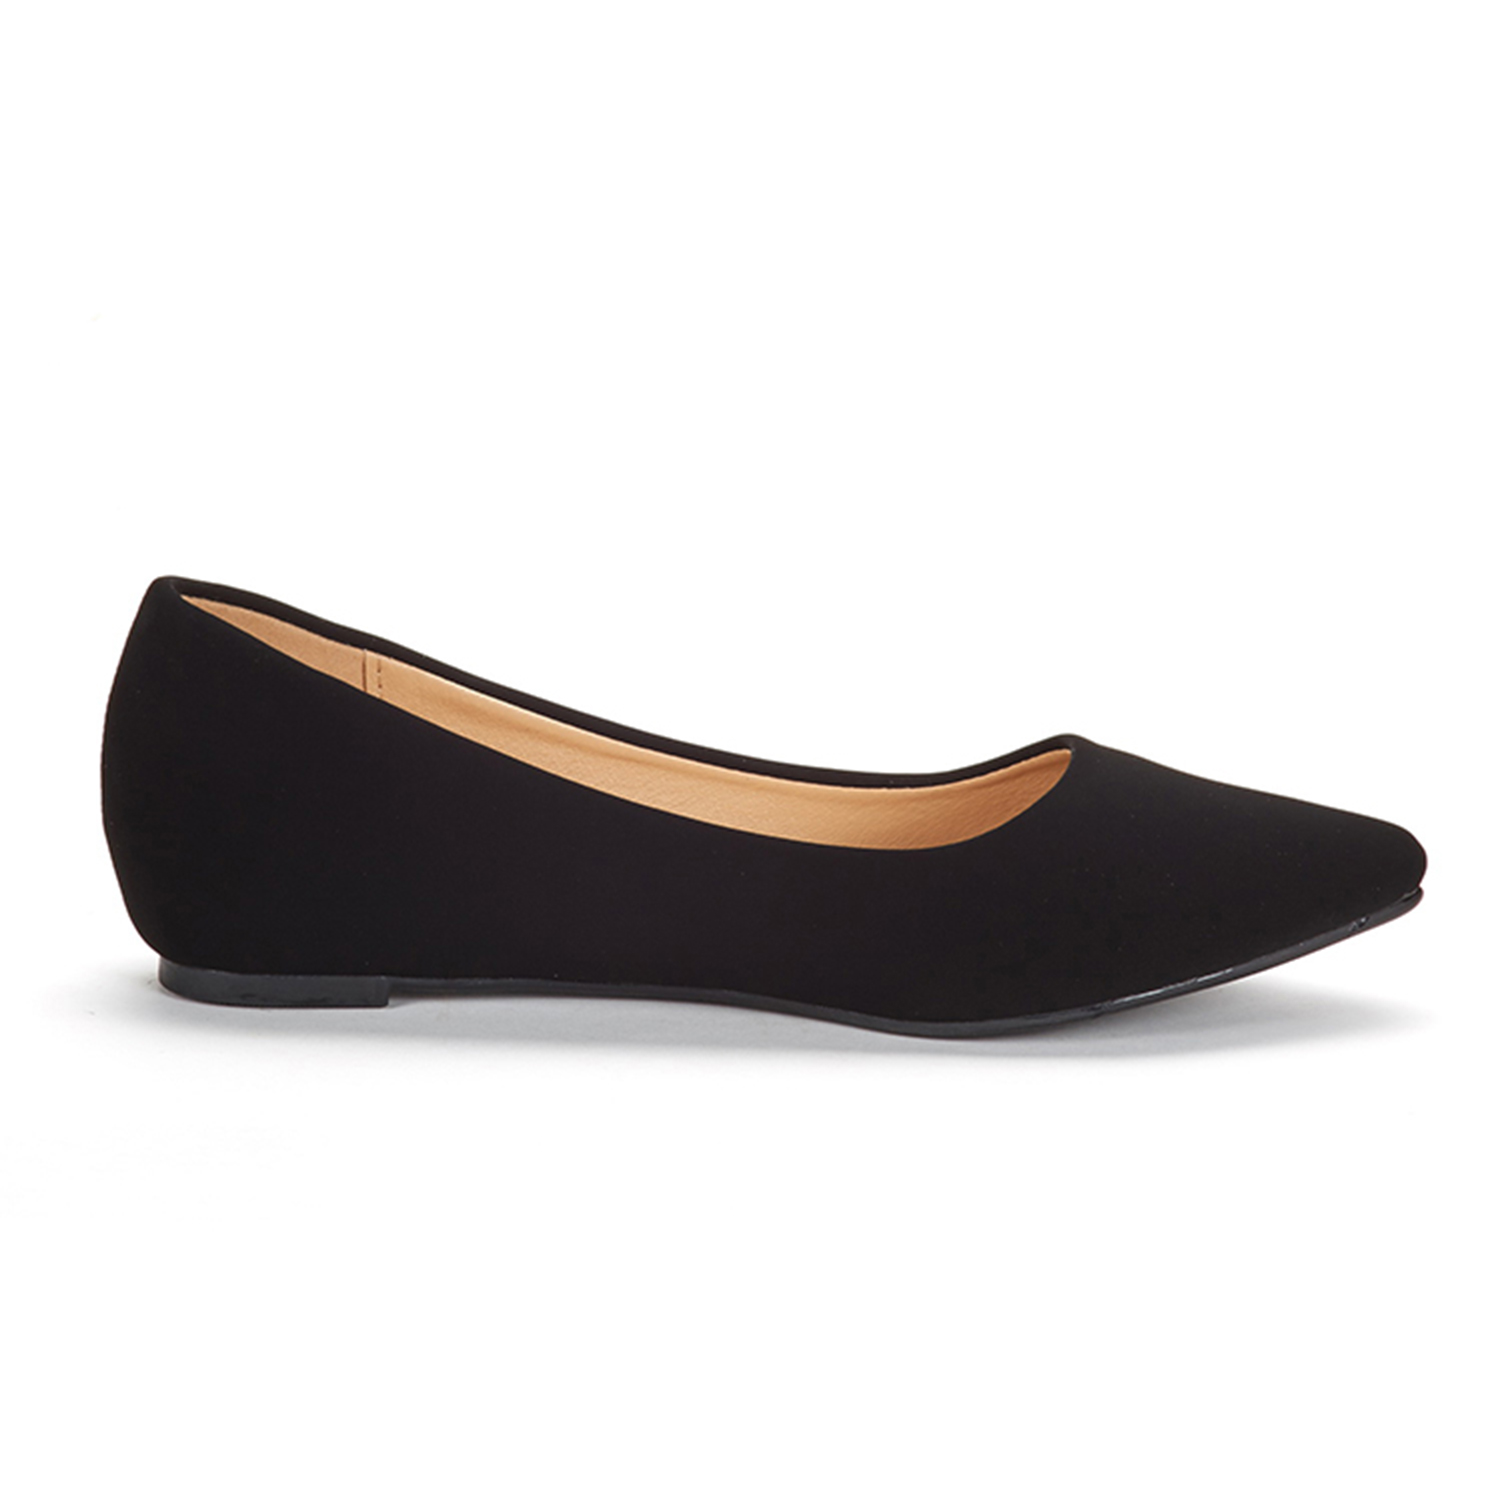 DREAM-PAIRS-Women-Low-Wedge-Flats-Ladies-Pointed-Toe-Slip-On-Comfort-Flat-Shoes thumbnail 96